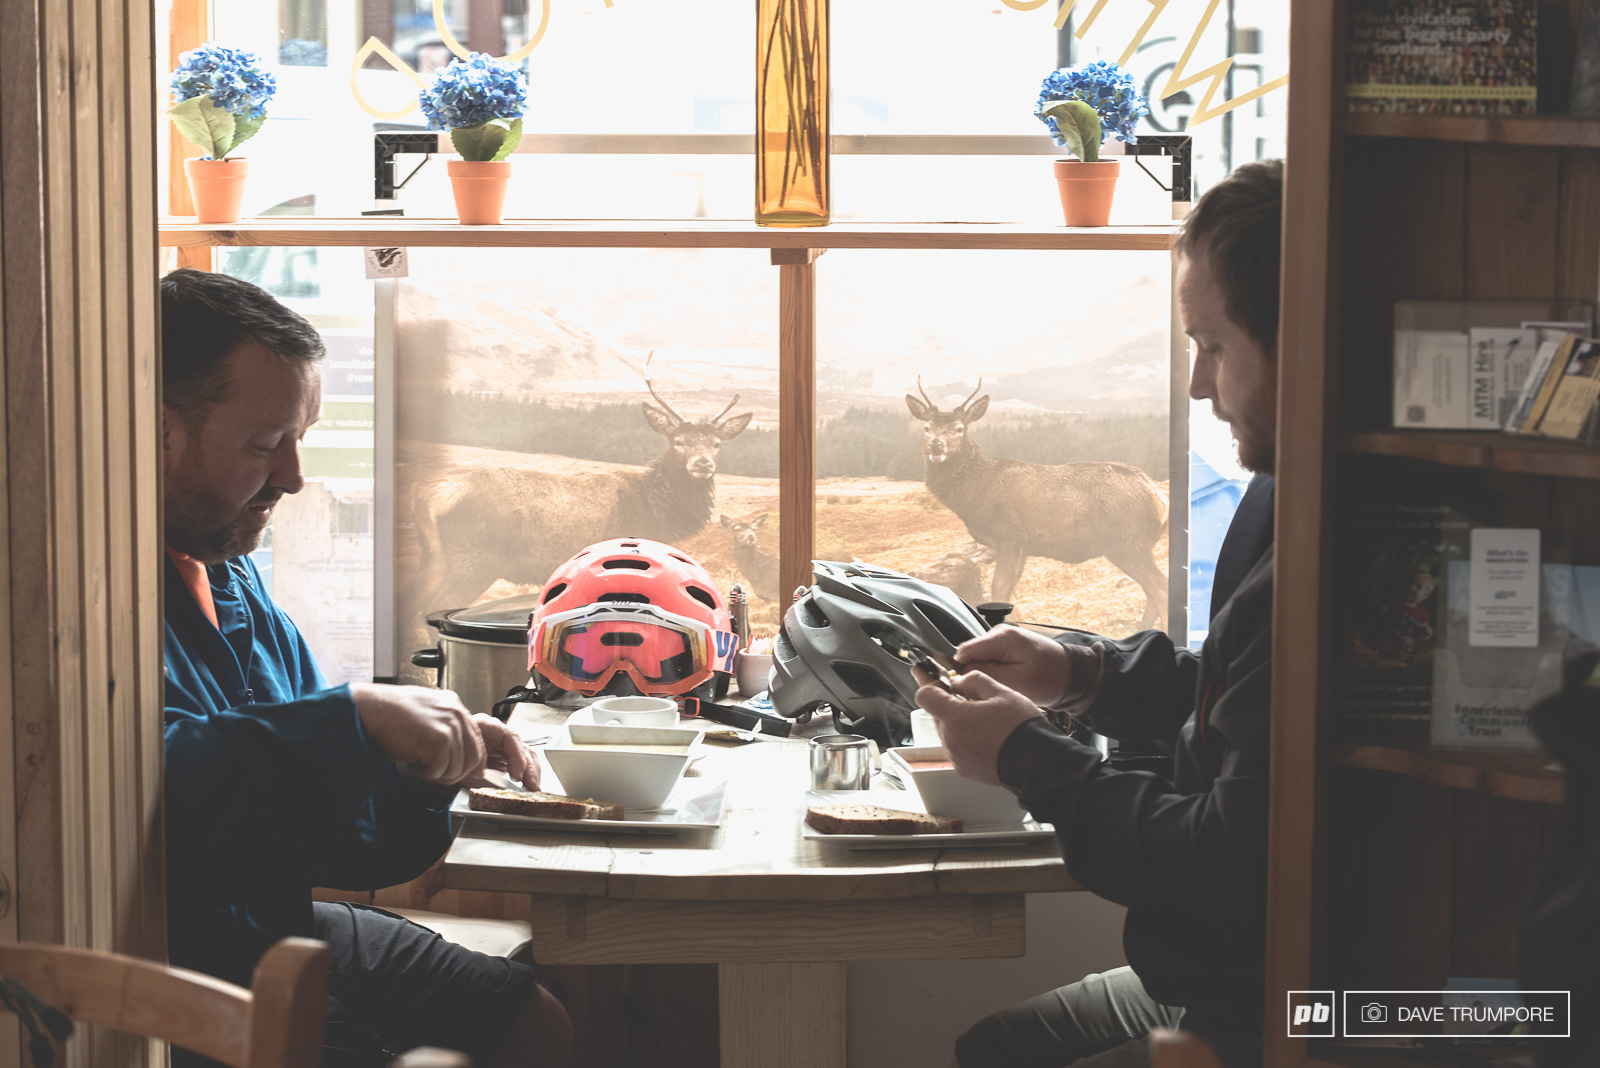 With long liaison stages through the small villages many riders could be seen at the local cafes relaxing refueling and most importantly drying out